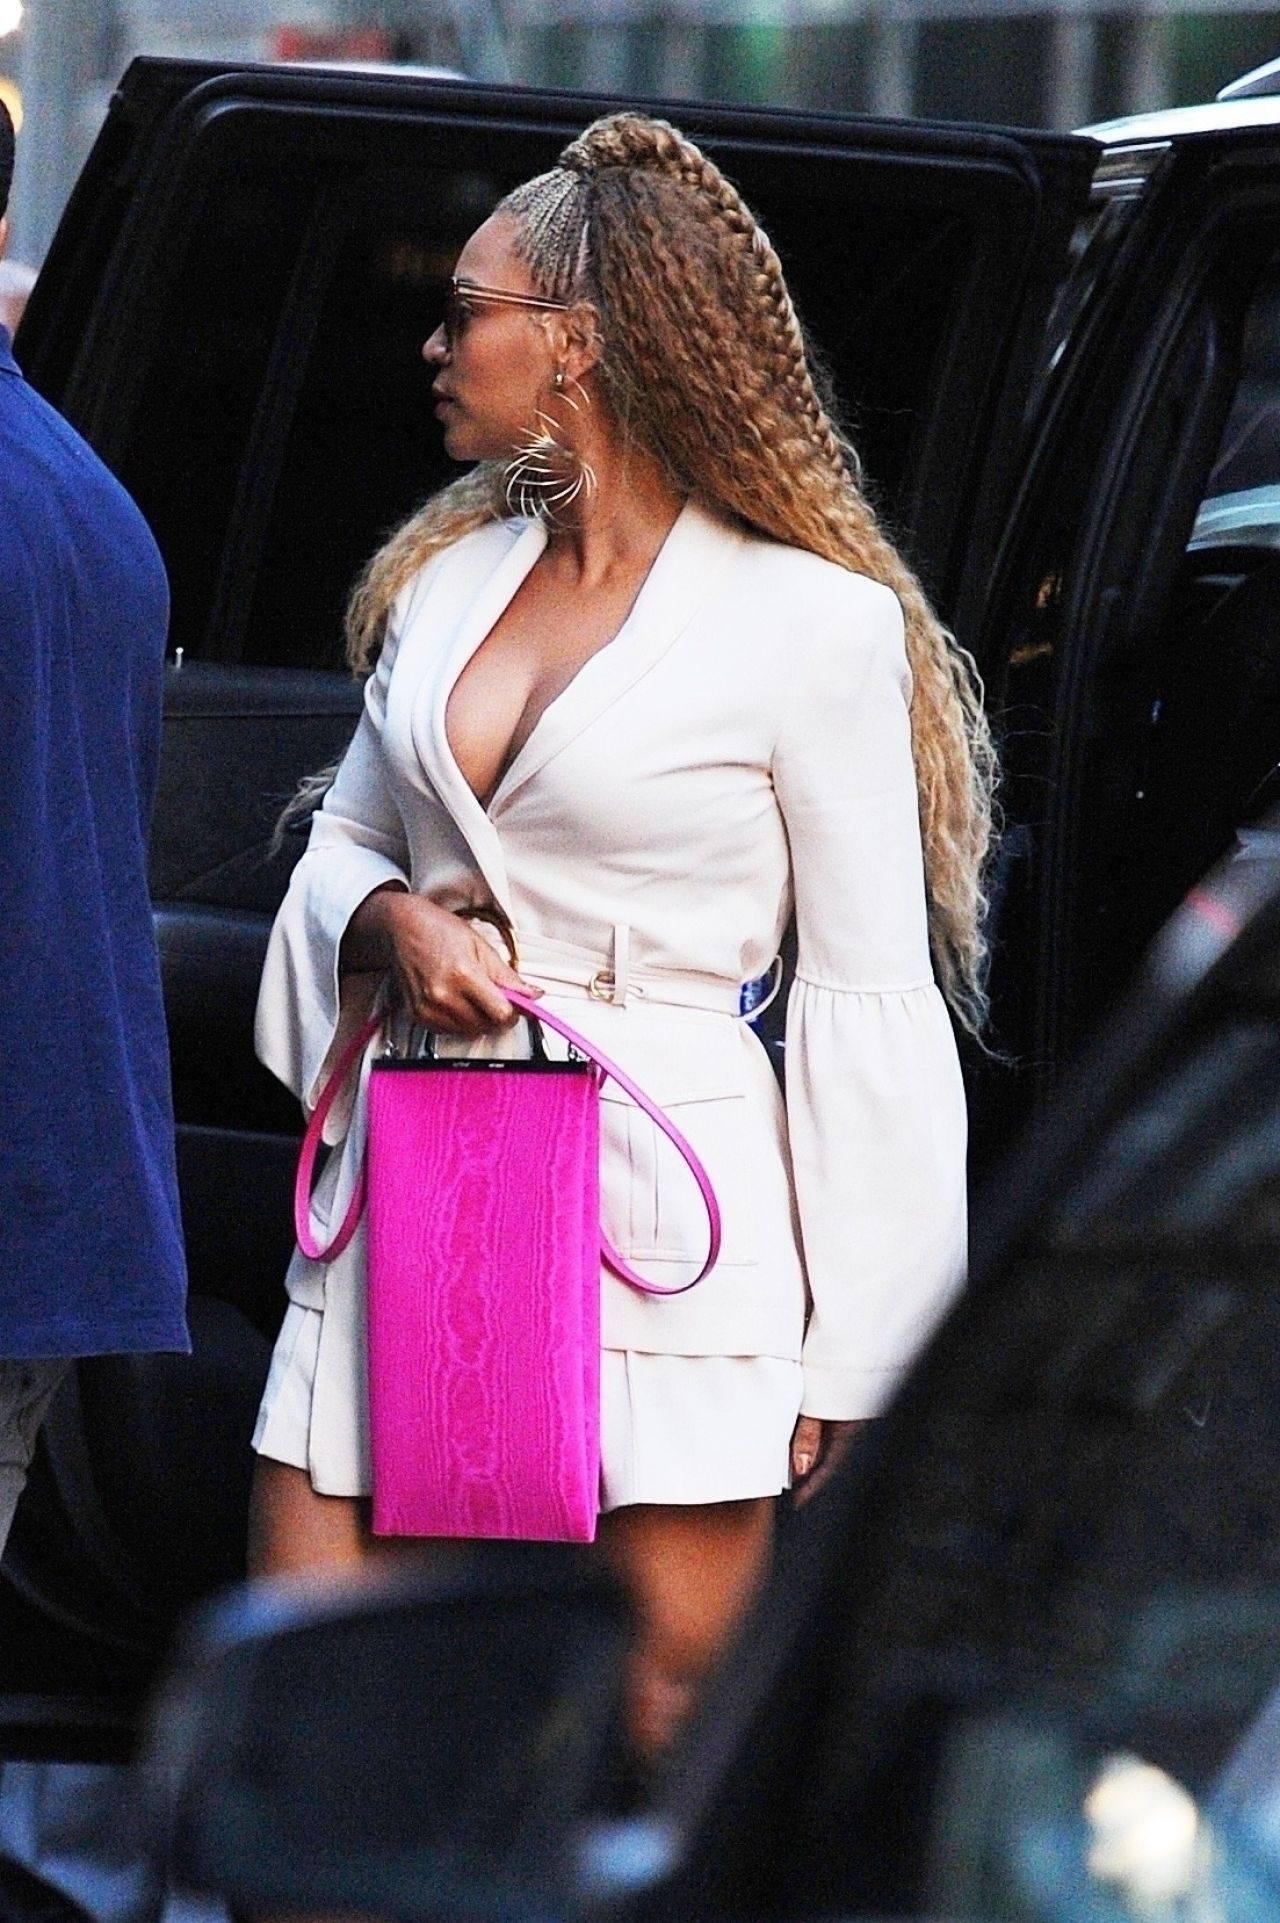 beyonce-out-in-new-york-08-06-2018-2.jpg